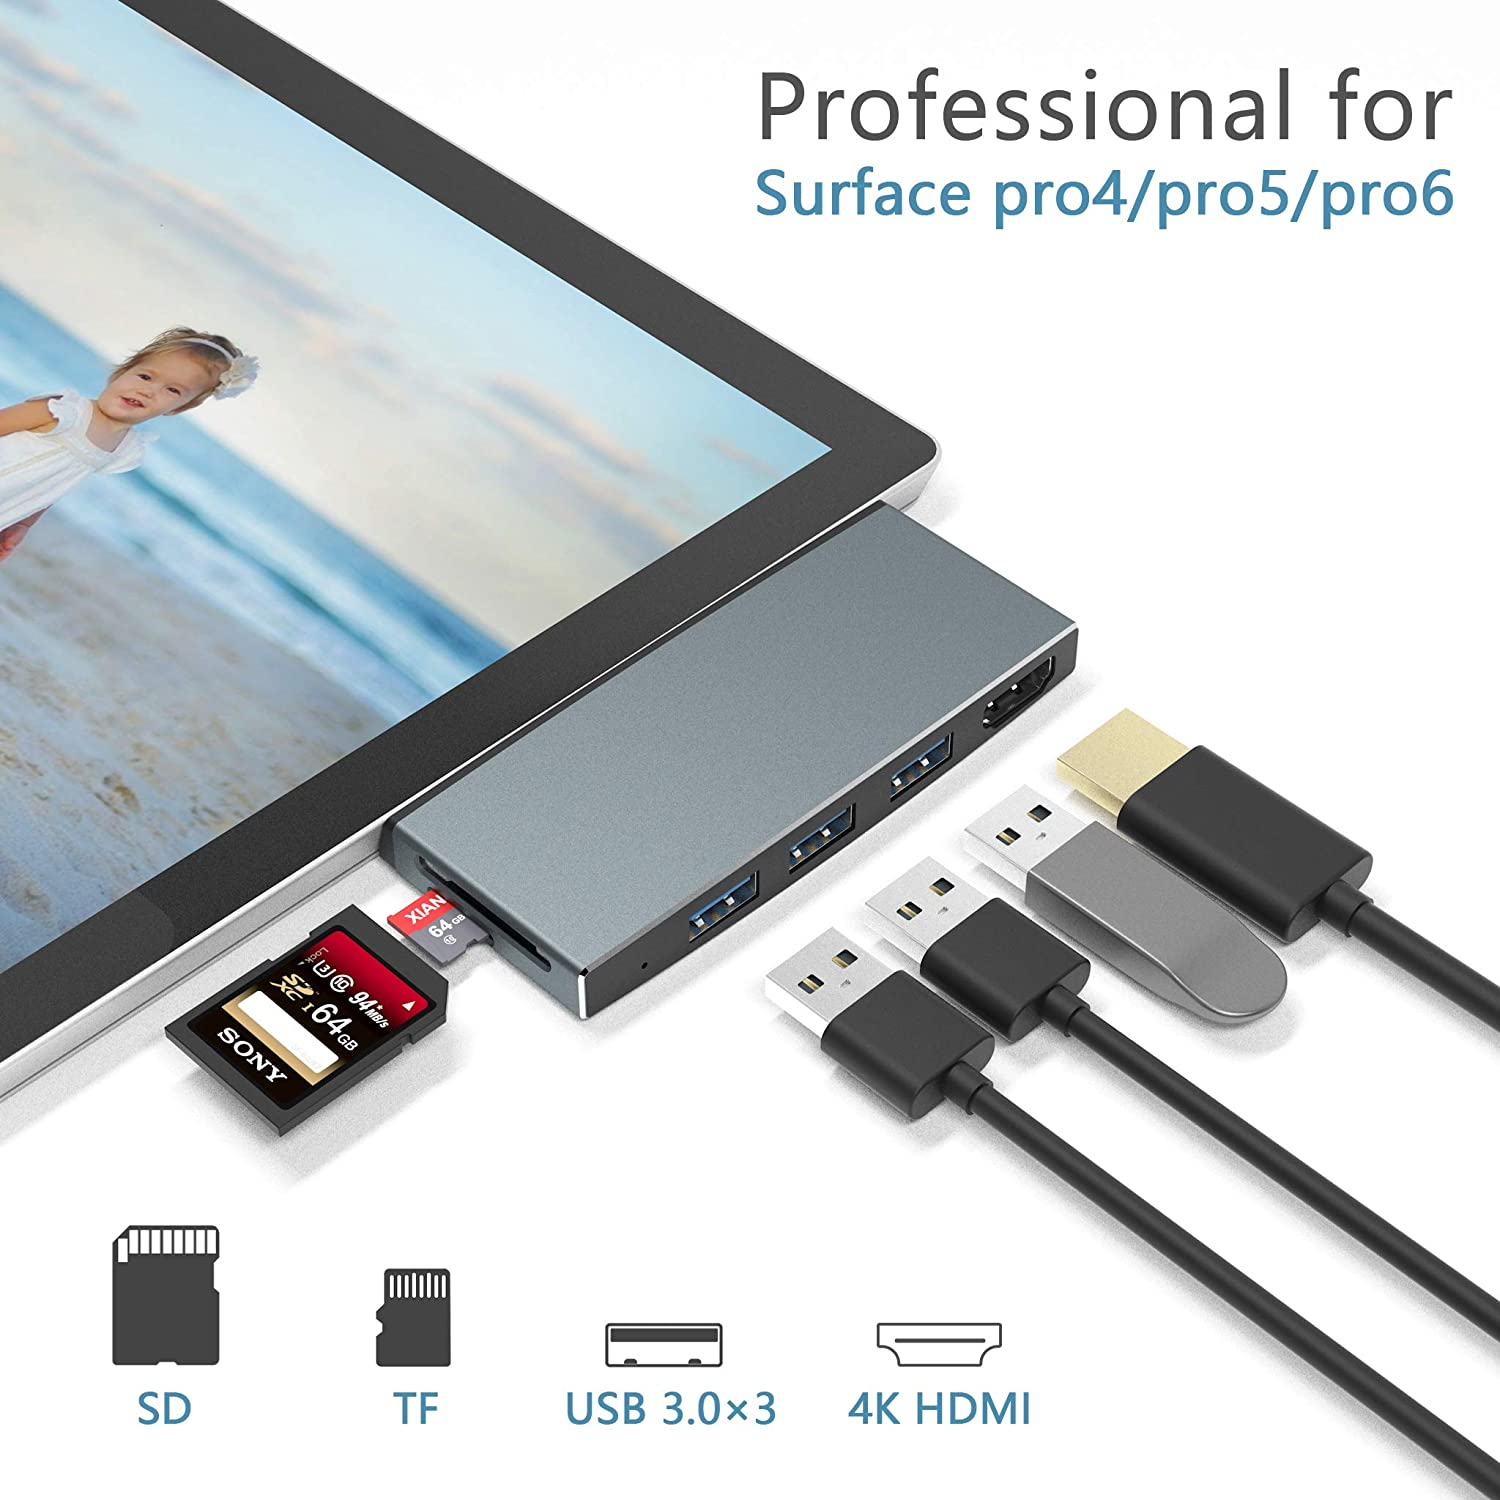 【Upgraded Version】 Surface Pro 4/Pro 5/Pro 6 Docking Station Hub with 4K HDMI Port+3 Port USB 3.0+SD/TF(Micro SD) Card Reader Converter Combo Adaptor for Microsoft Surface Pro 6/ Pro 5/ Pro 4